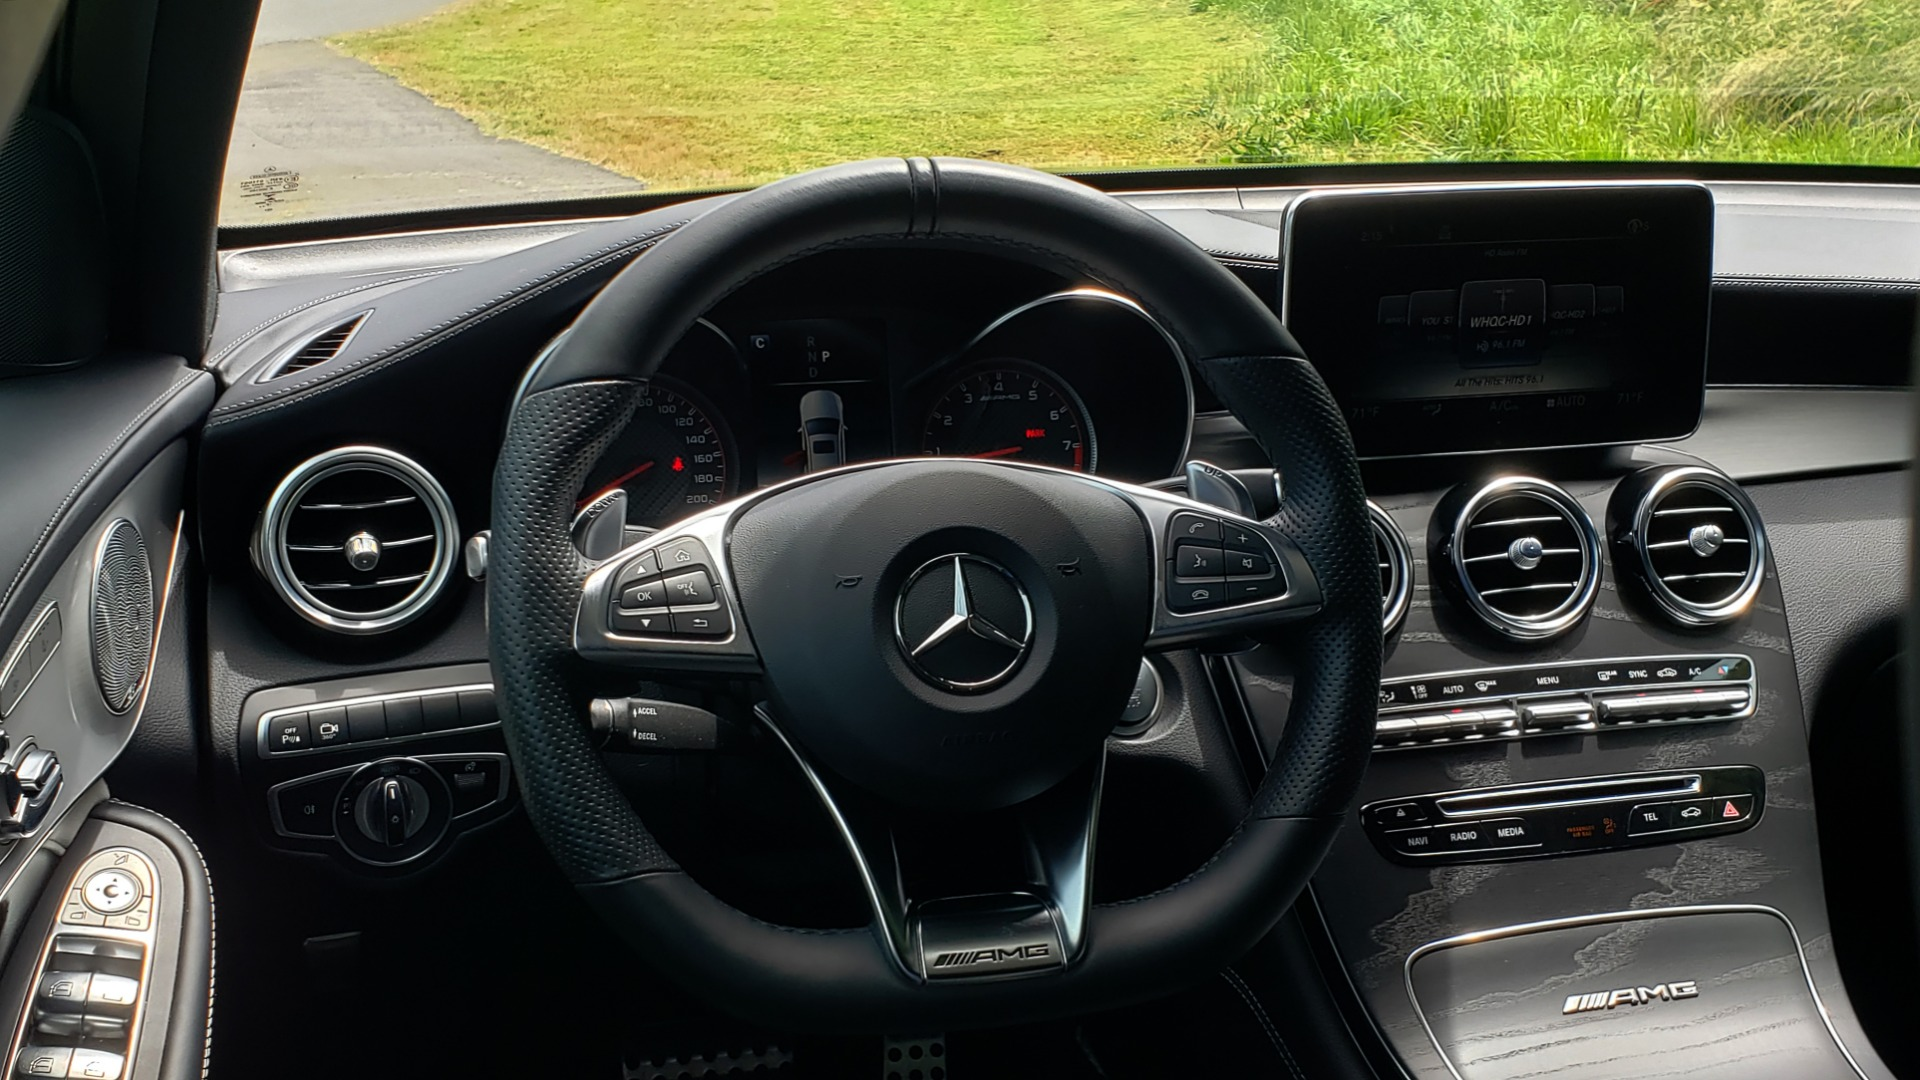 Used 2019 Mercedes-Benz GLC AMG 63 S 4MATIC COUPE / NAV / TRACK PACE APP / AMG PERF EXH / MULTIMEDIA for sale Sold at Formula Imports in Charlotte NC 28227 46